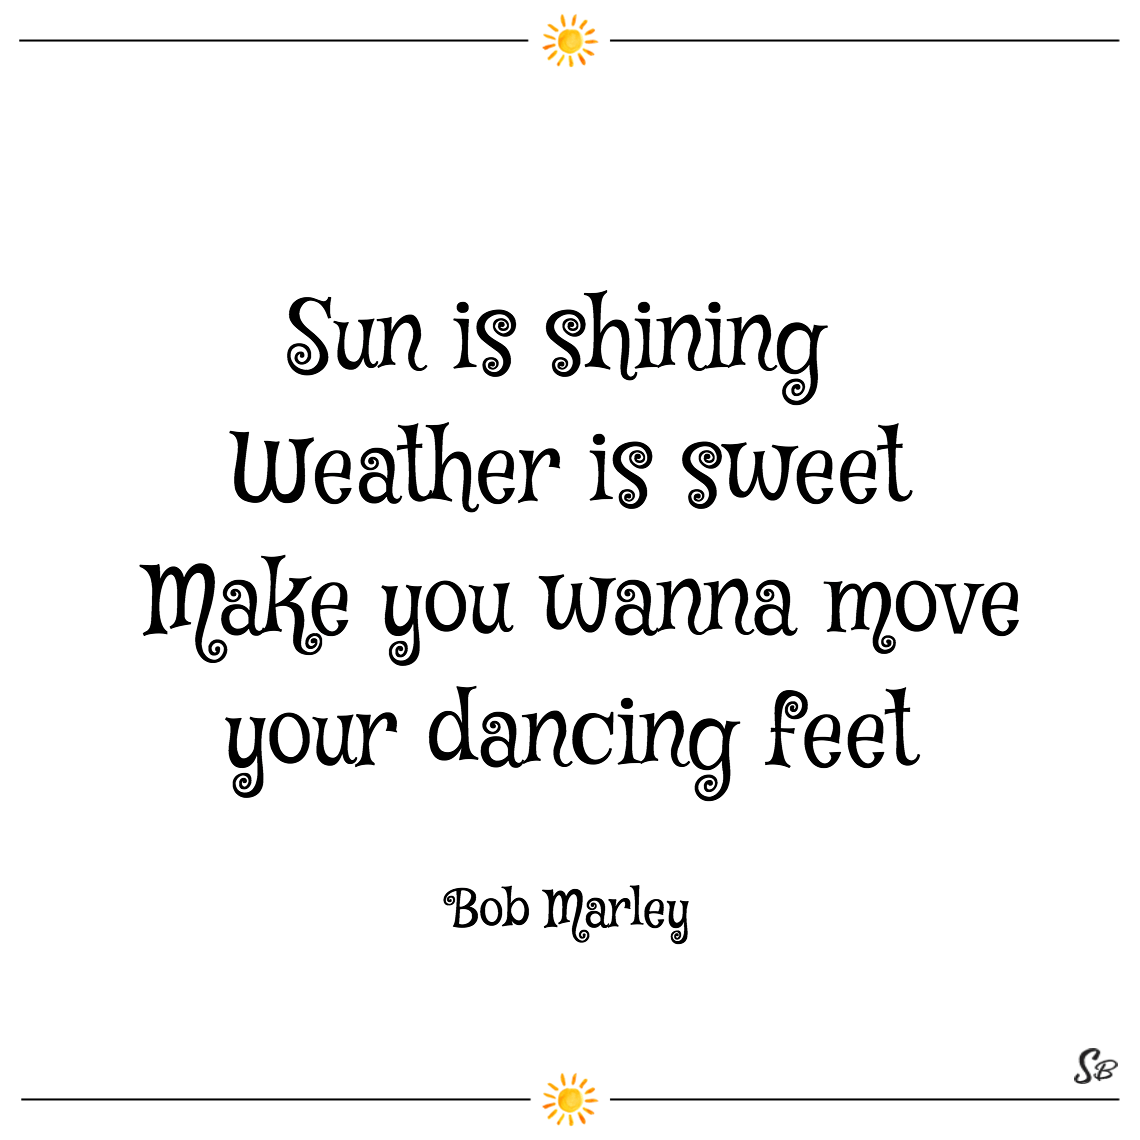 Sun is shining weather is sweet make you wanna move your dancing feet bob marley summer quotes